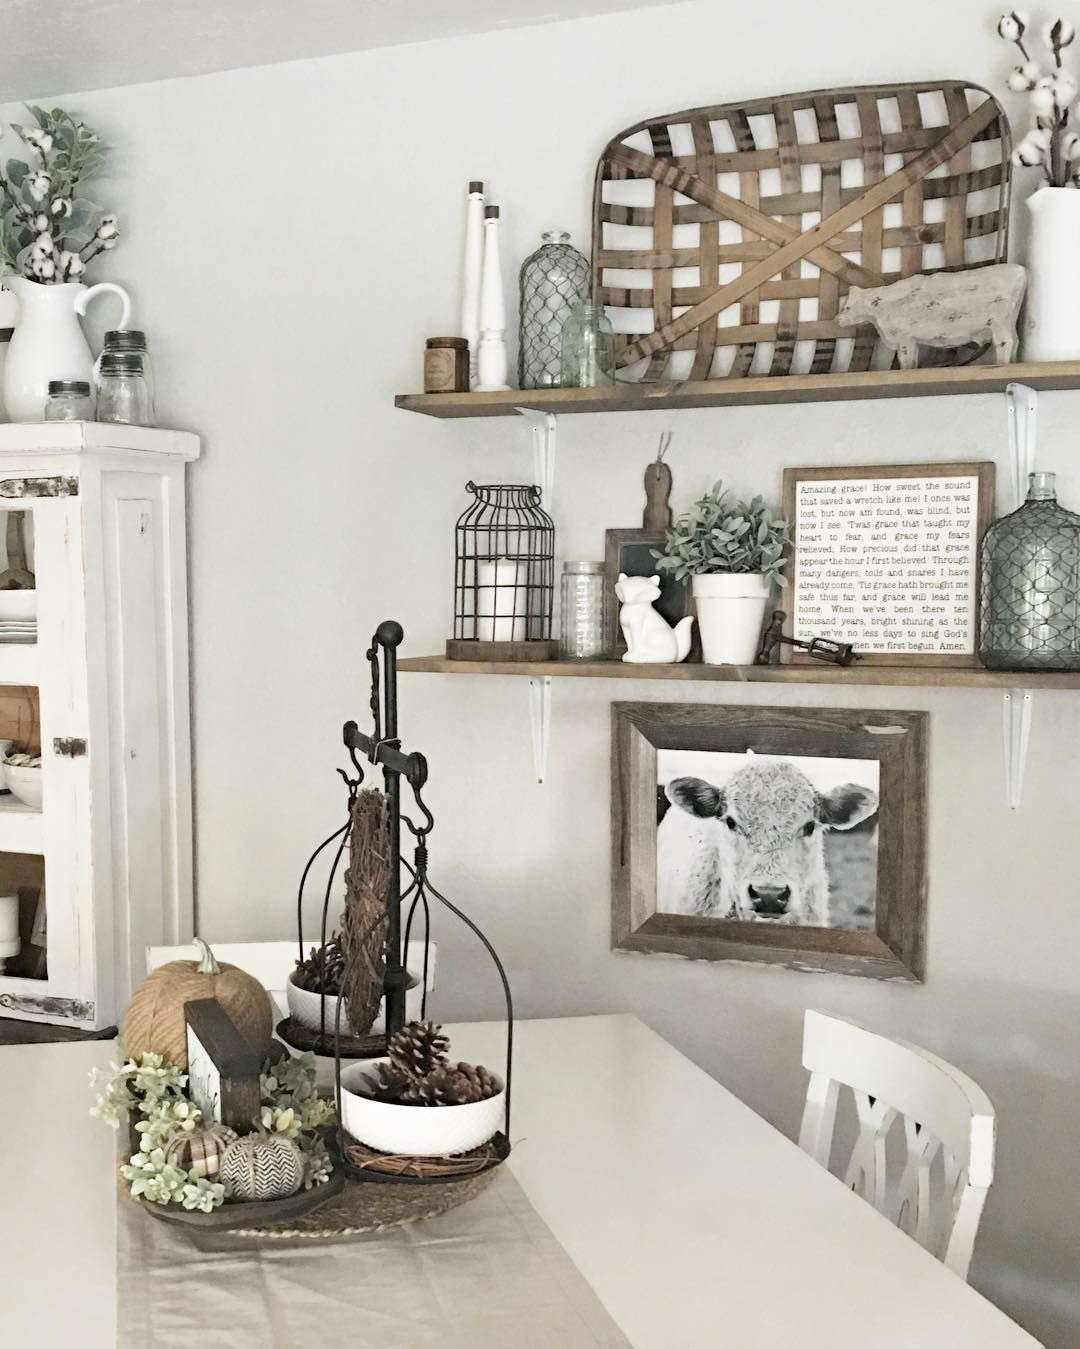 country kitchen wall decor backslash for pin by janet hernandez on renovation ideas farmhouse rustic dinning room dining picture living